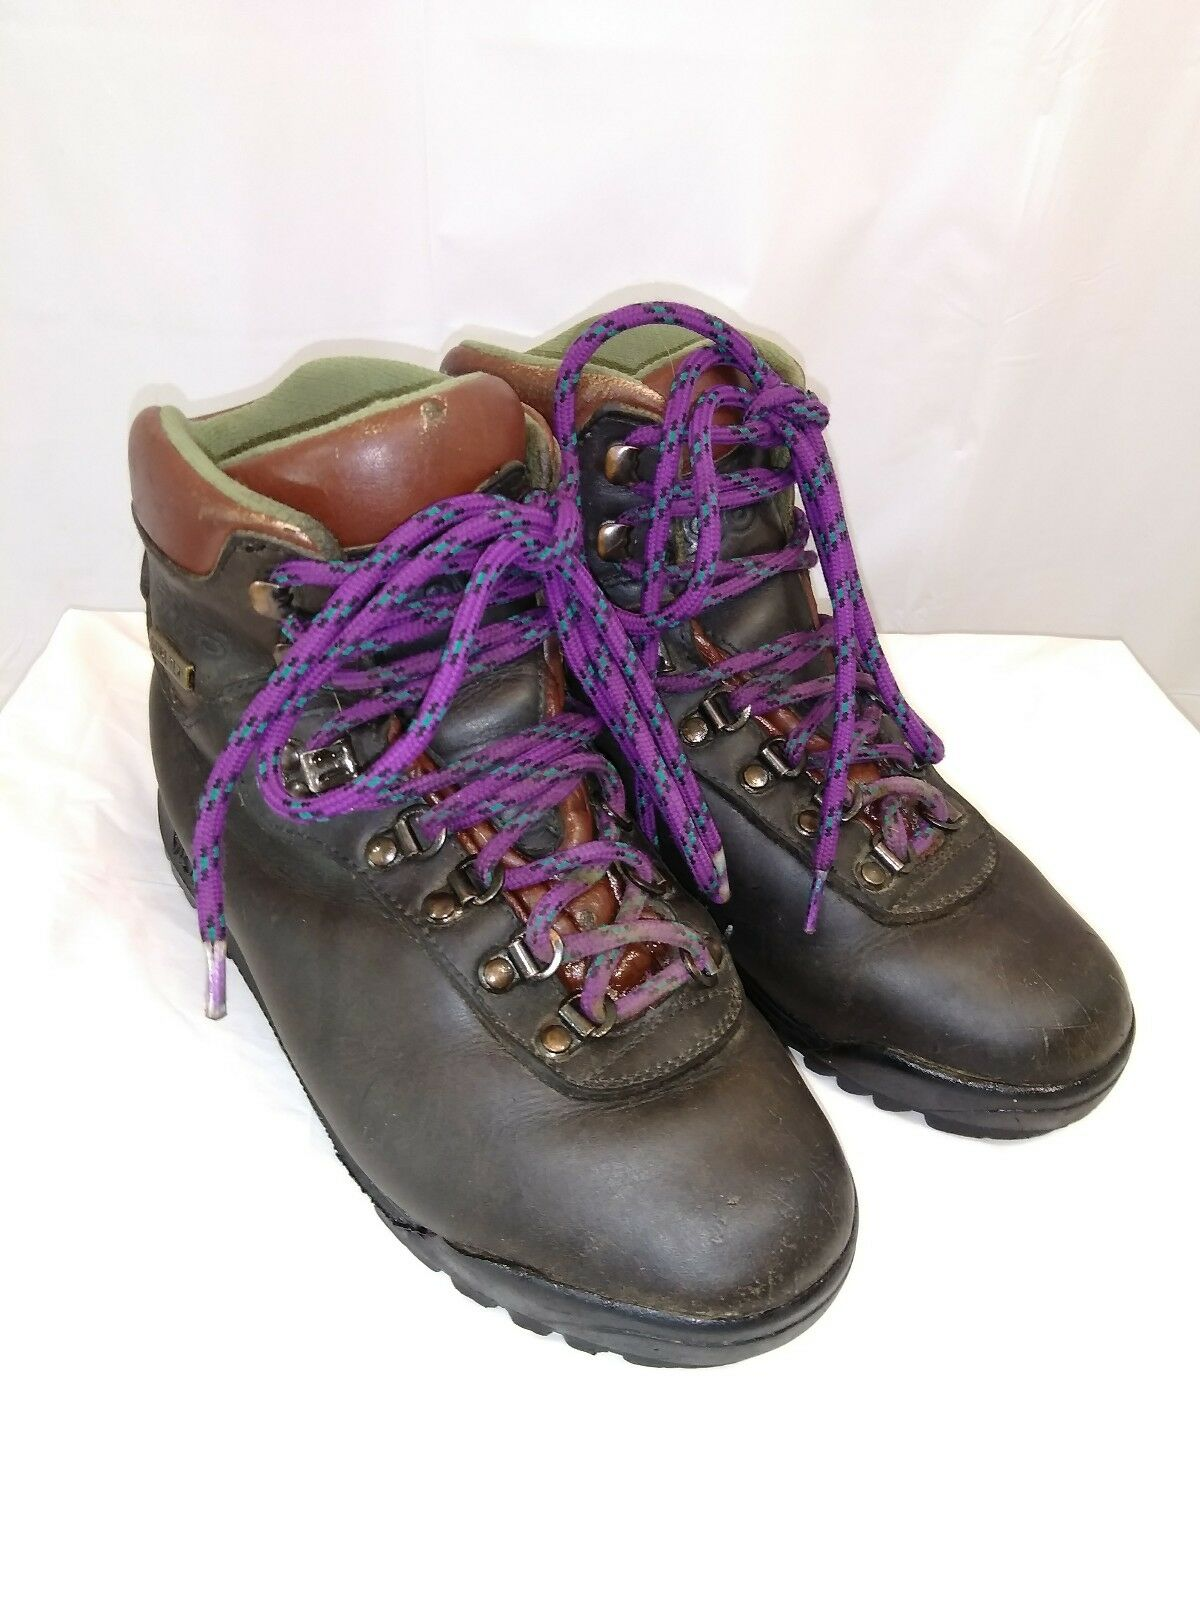 Asolo AFX 520 Brown Leather & Gore-Tex Hiking Boots Vibram Sole Woman's Size 8